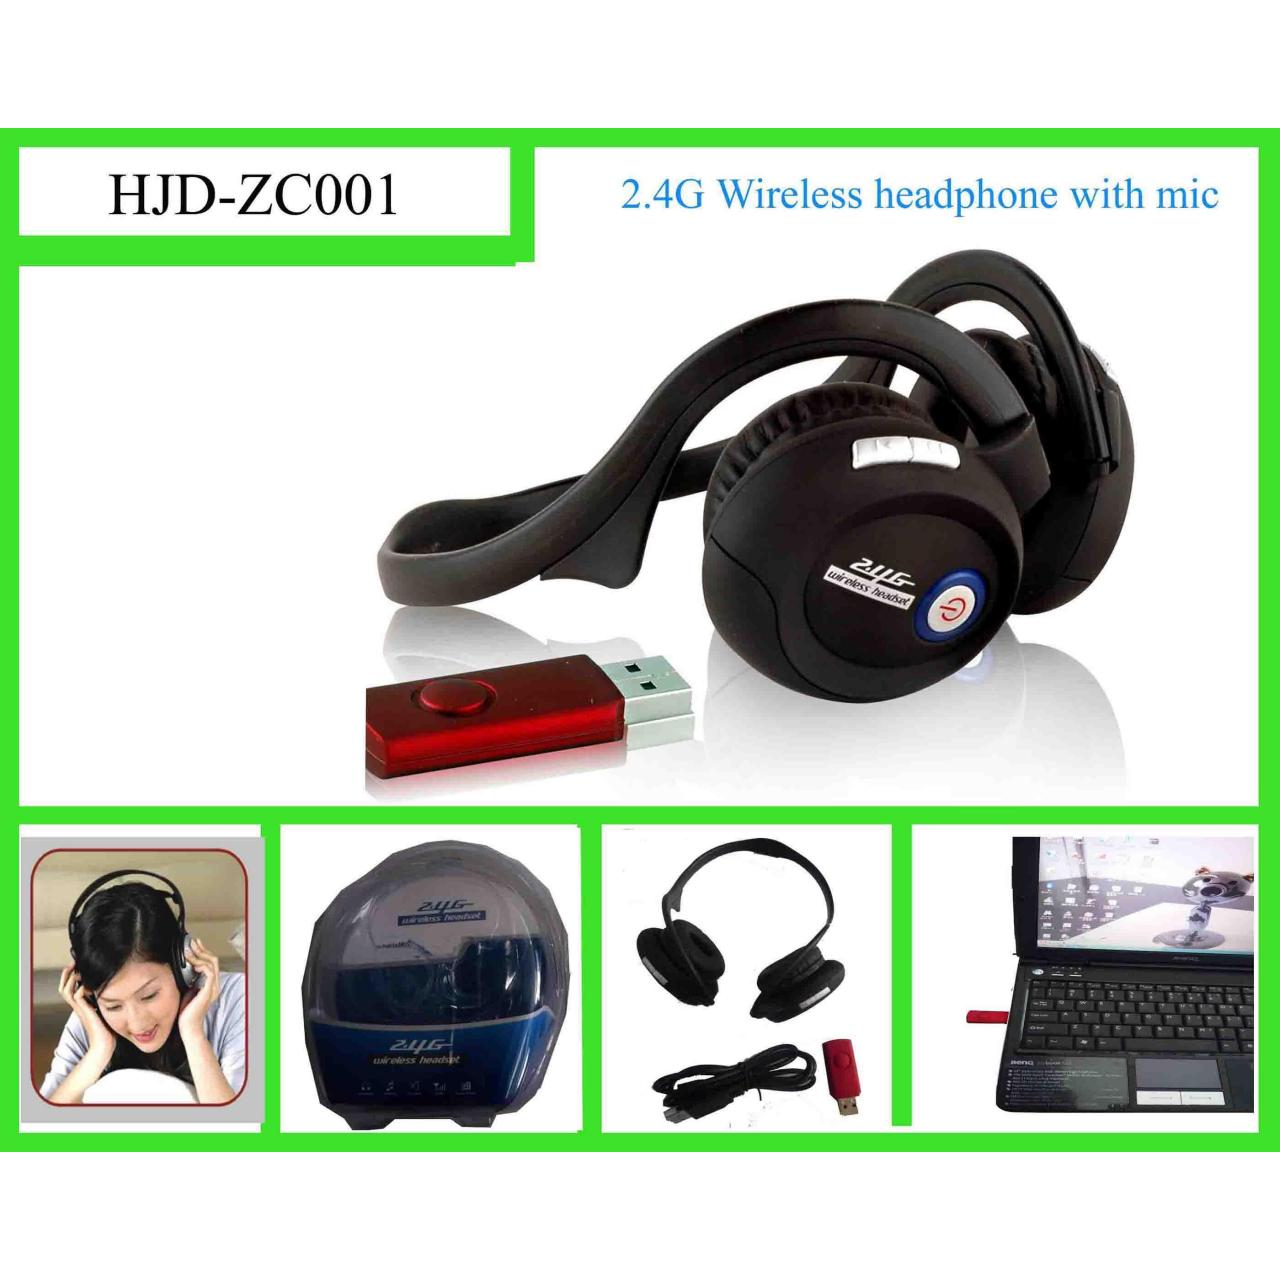 Buy cheap HJD-ZC001 2.4G wireless headphone from wholesalers